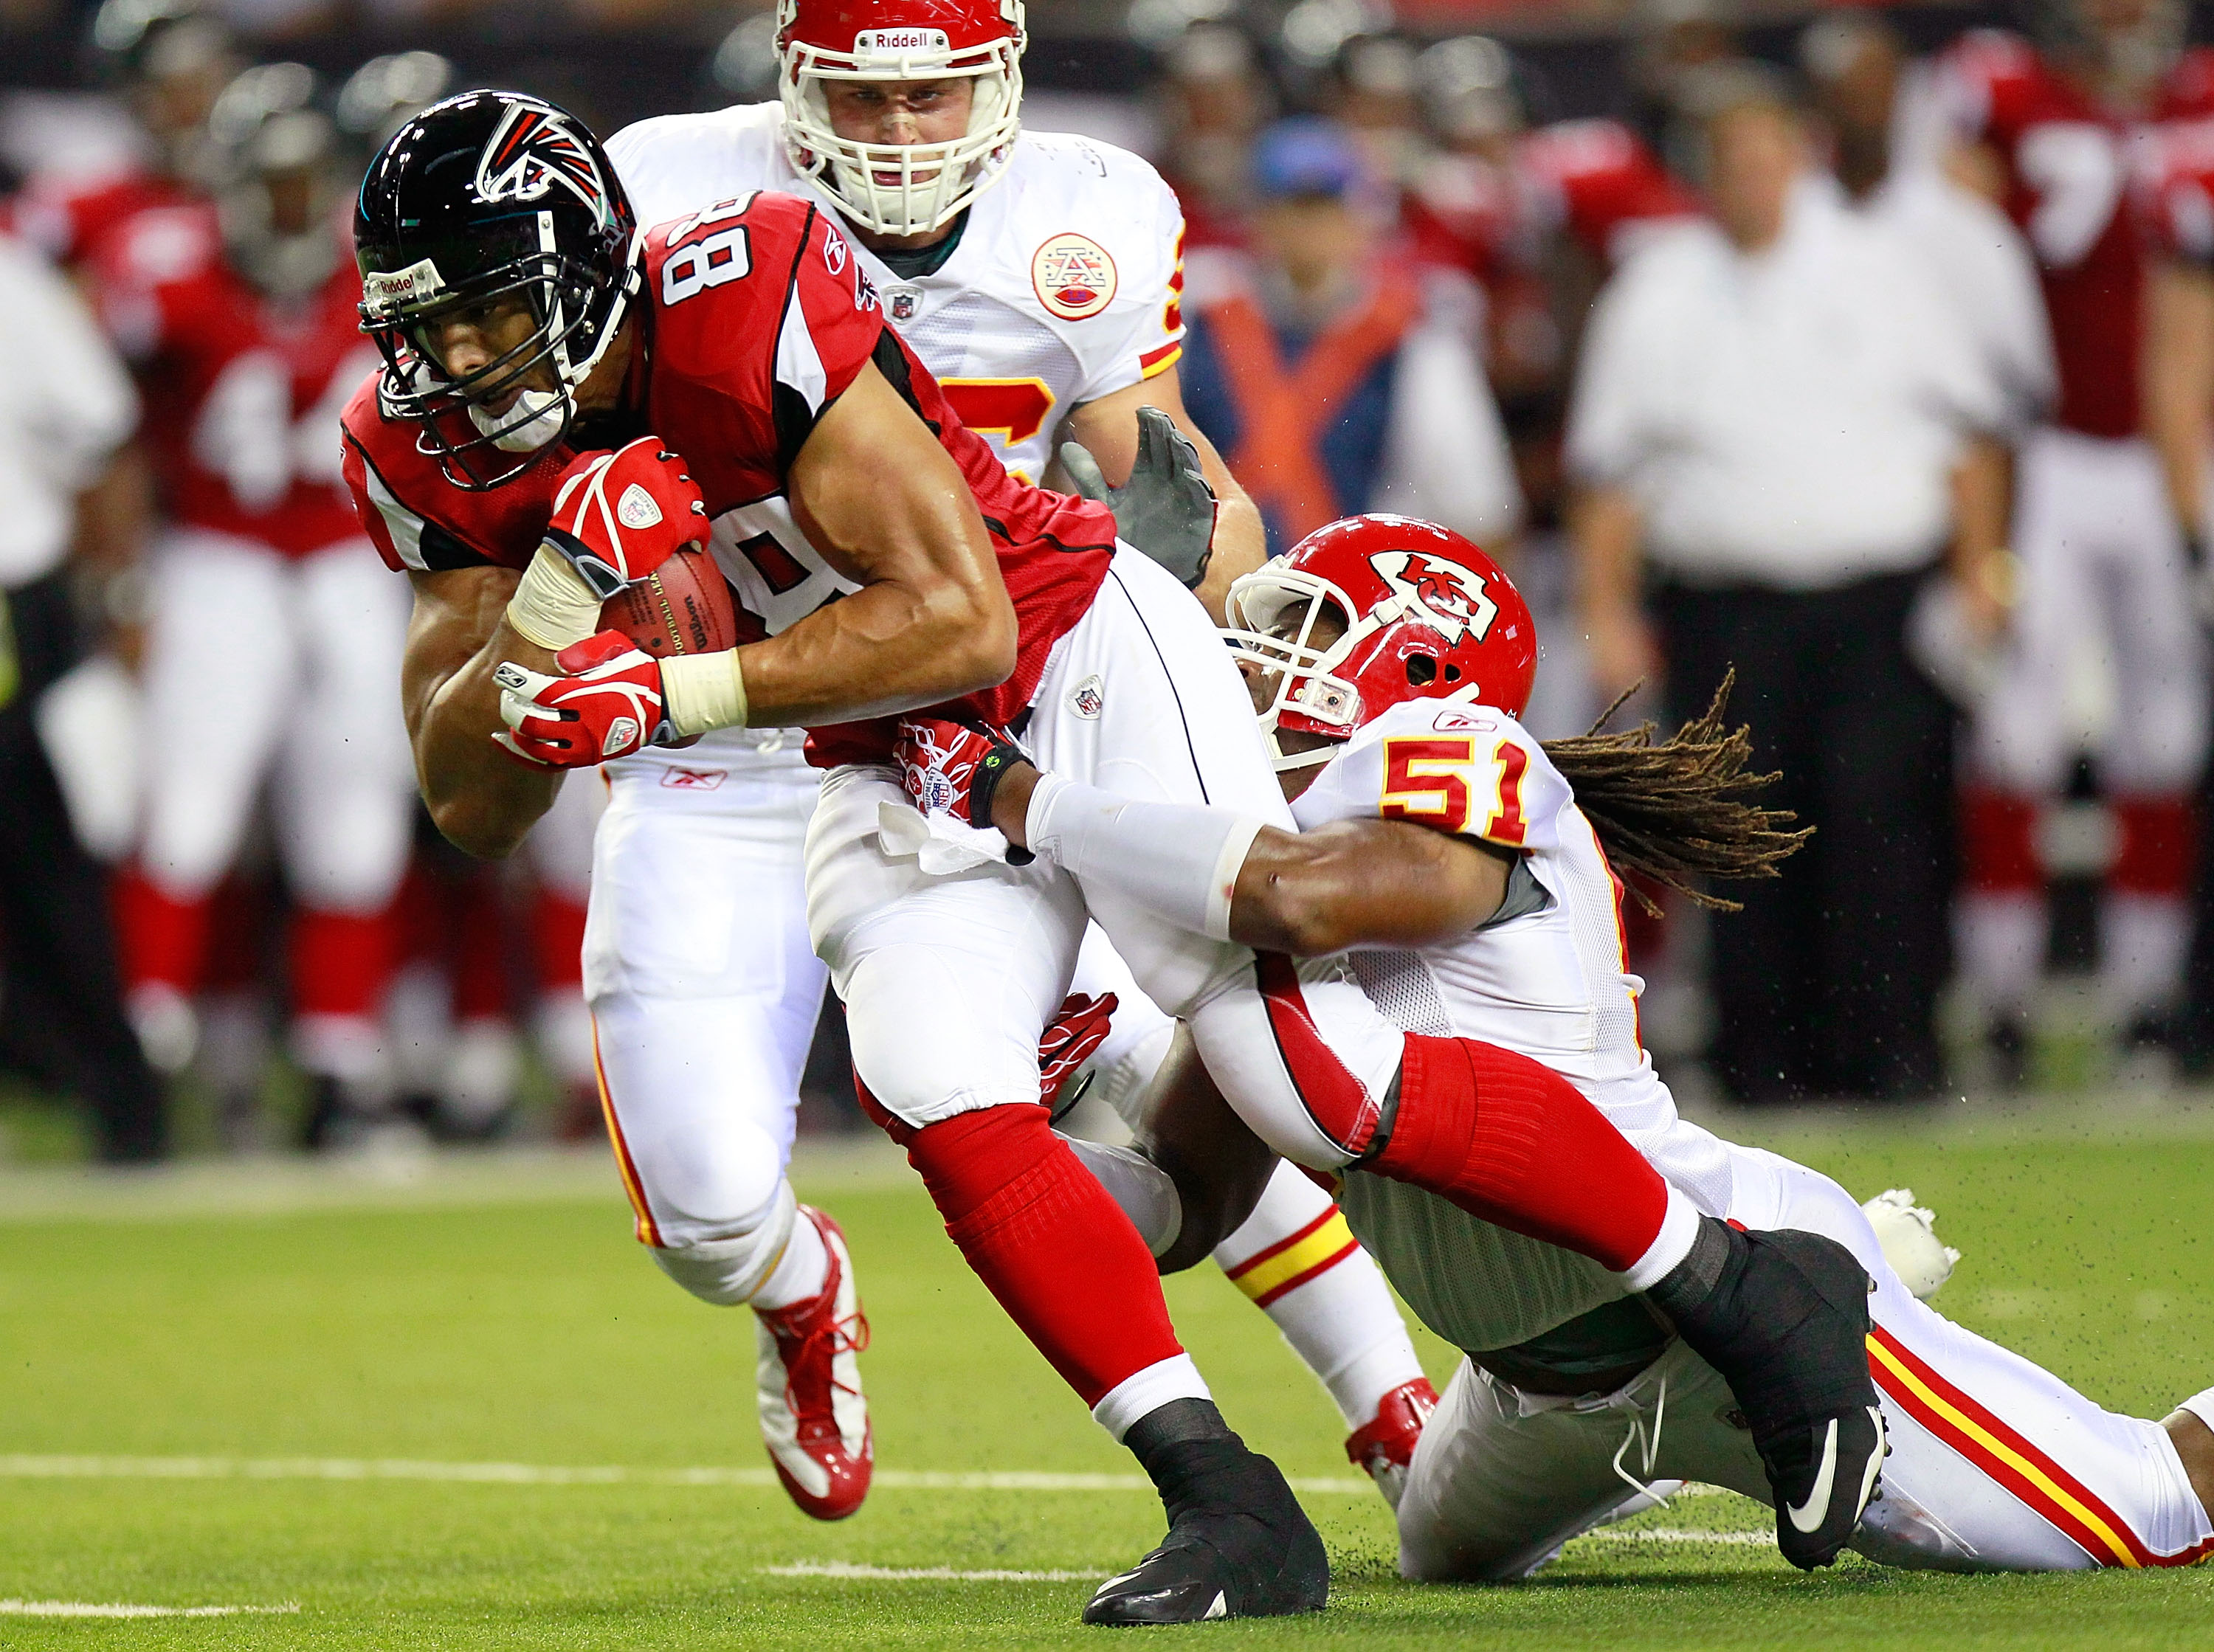 ATLANTA - AUGUST 13:  Tony Gonzalez #88 of the Atlanta Falcons pulls in a reception against Corey Mays #51 of the Kansas City Chiefs at Georgia Dome on August 13, 2010 in Atlanta, Georgia.  (Photo by Kevin C. Cox/Getty Images)